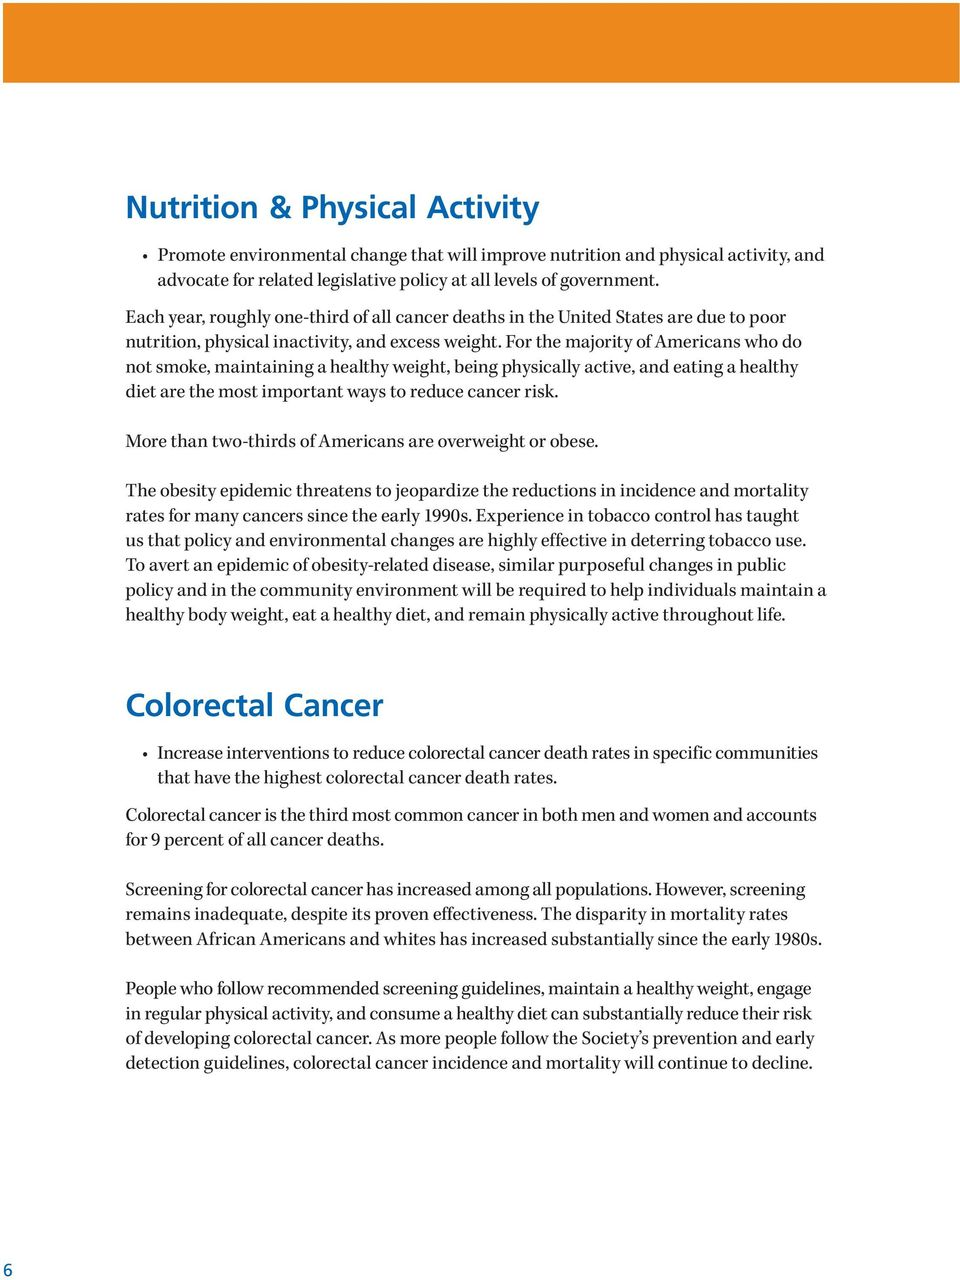 For the majority of Americans who do not smoke, maintaining a healthy weight, being physically active, and eating a healthy diet are the most important ways to reduce cancer risk.